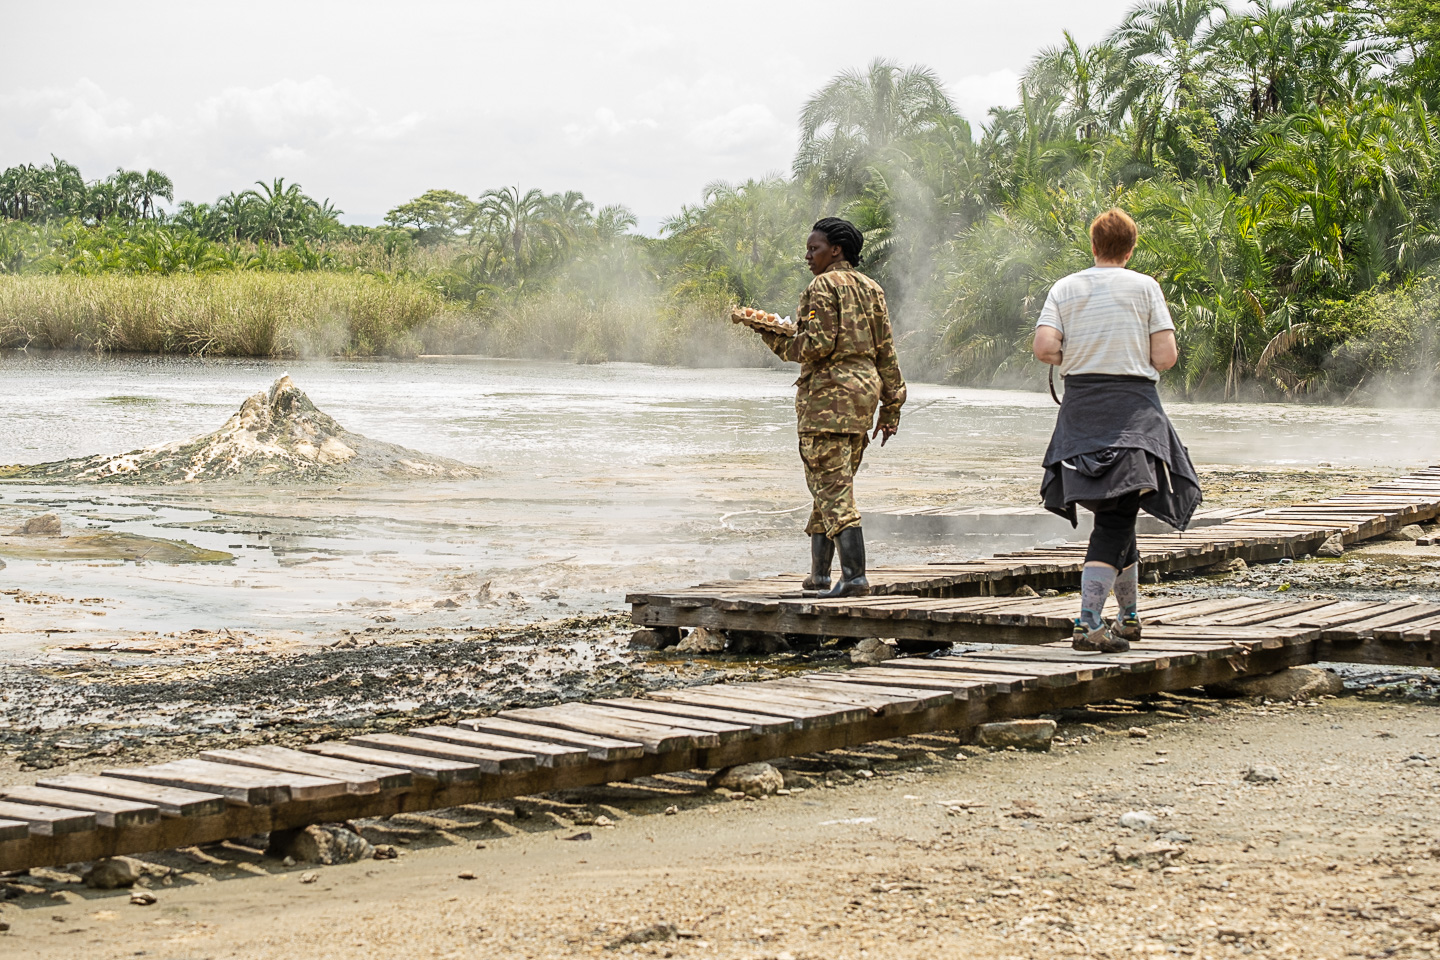 Kim walking with our guide Harriet to boil eggs in the femaie hot springs, Semiliki National Park, Uganda image copyright @triplefphototours